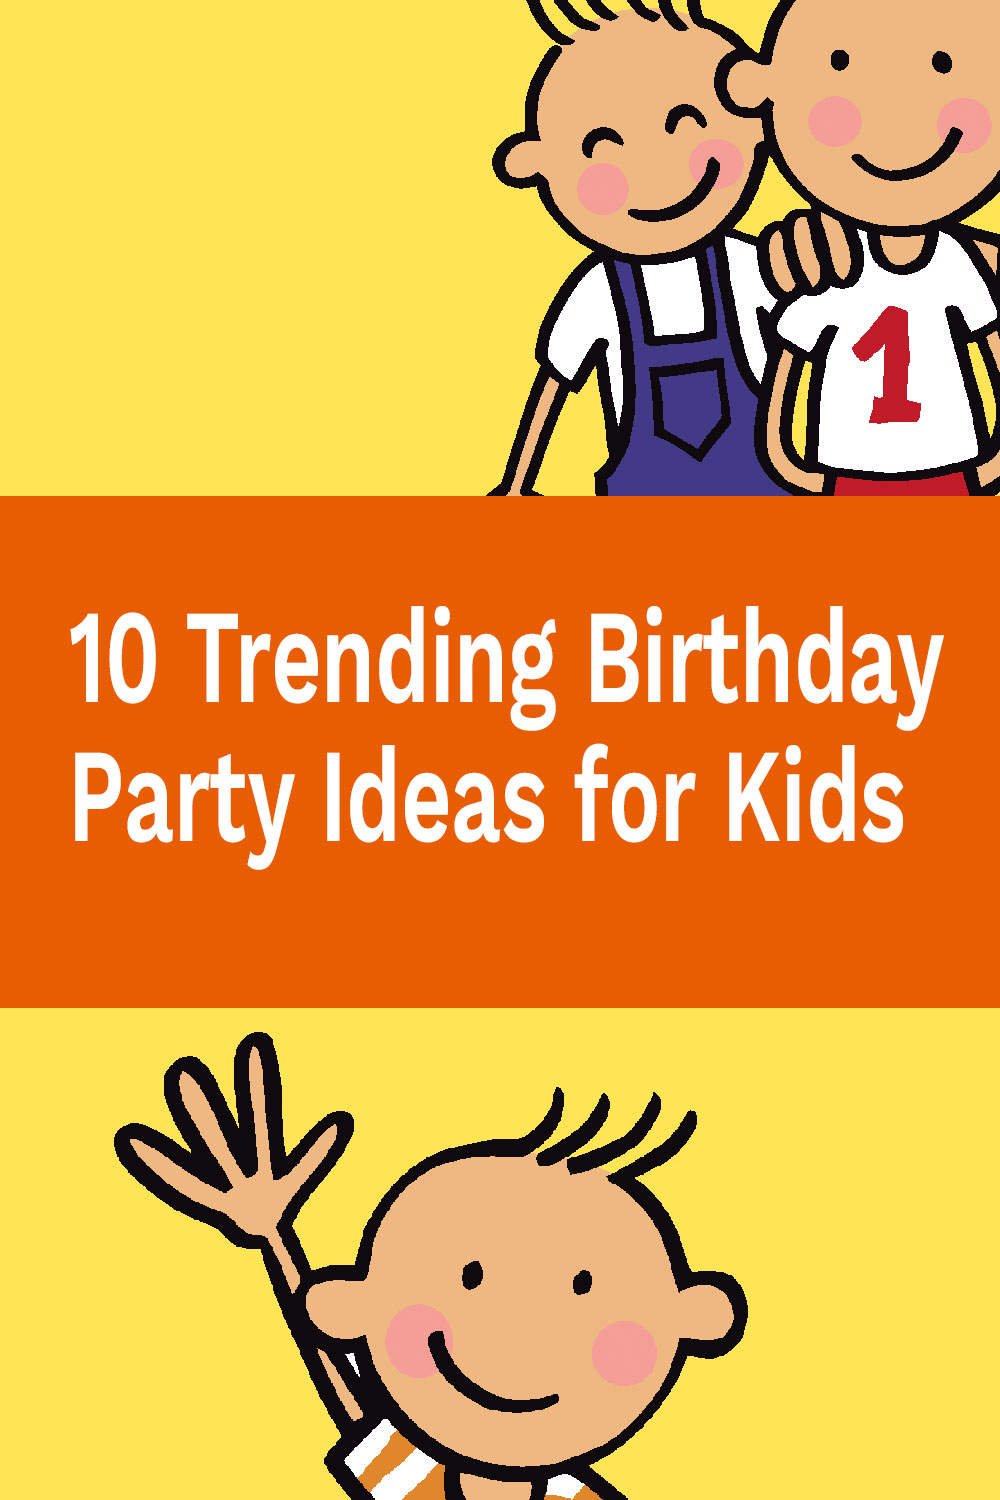 10 Trending Birthday Party Ideas for Kids